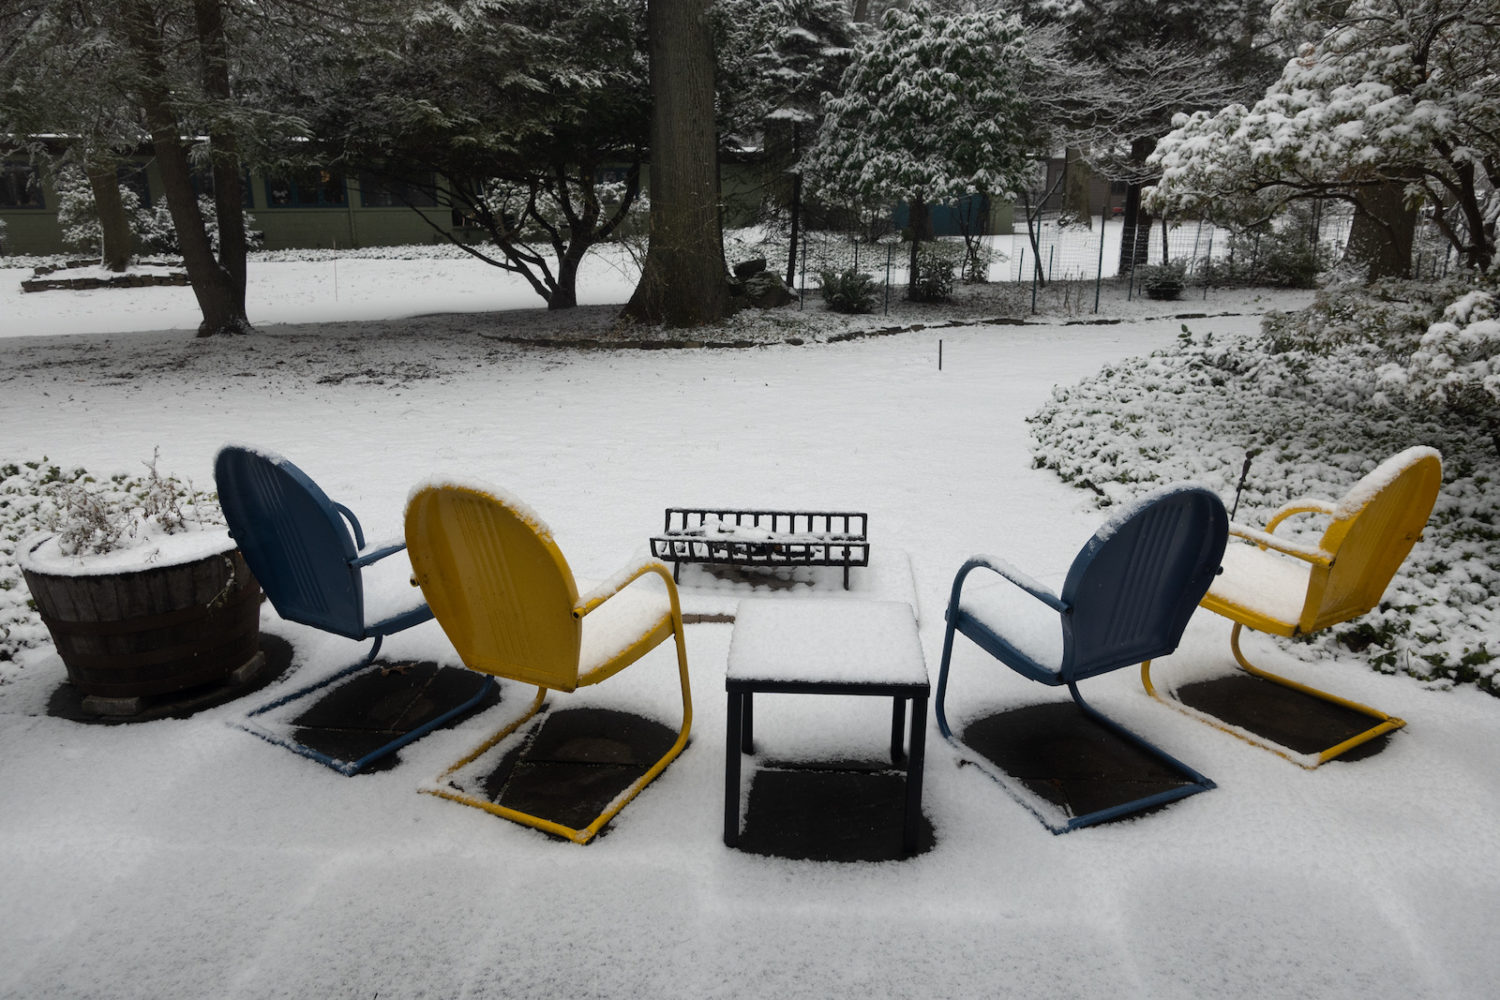 Four chairs out front in the snow